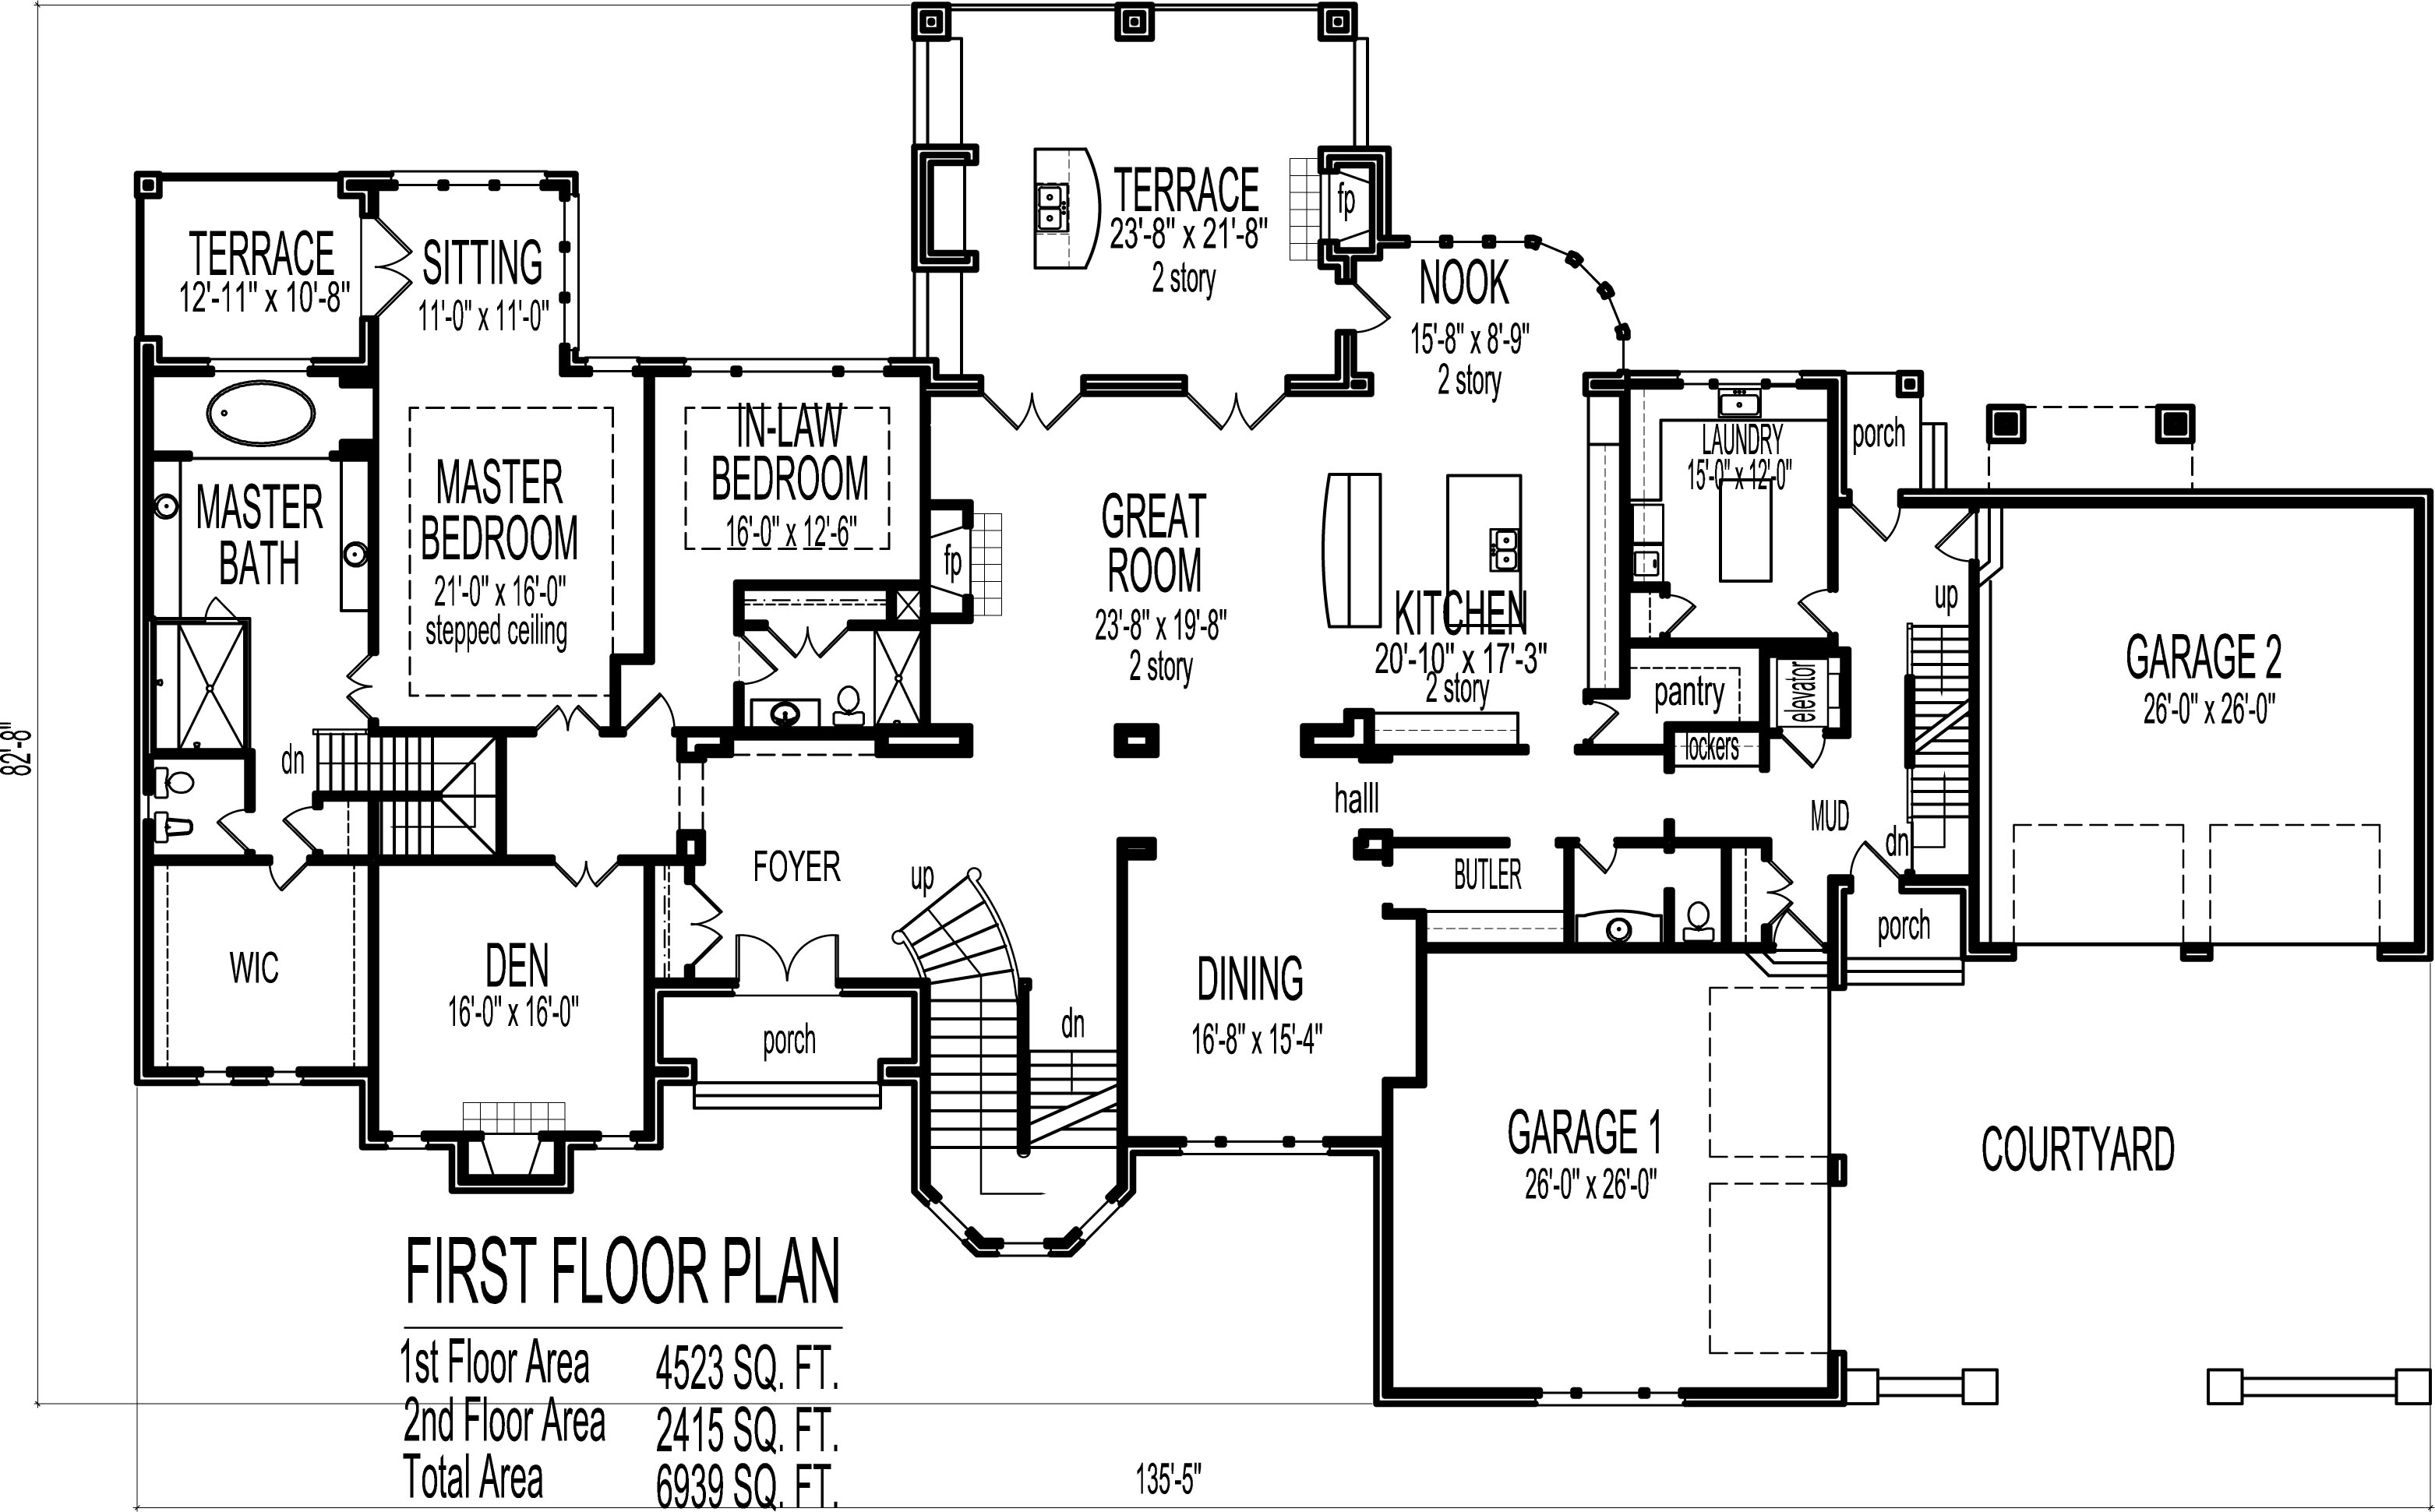 Dream house floor plans blueprints 2 story 5 bedroom large for 5 room house plans